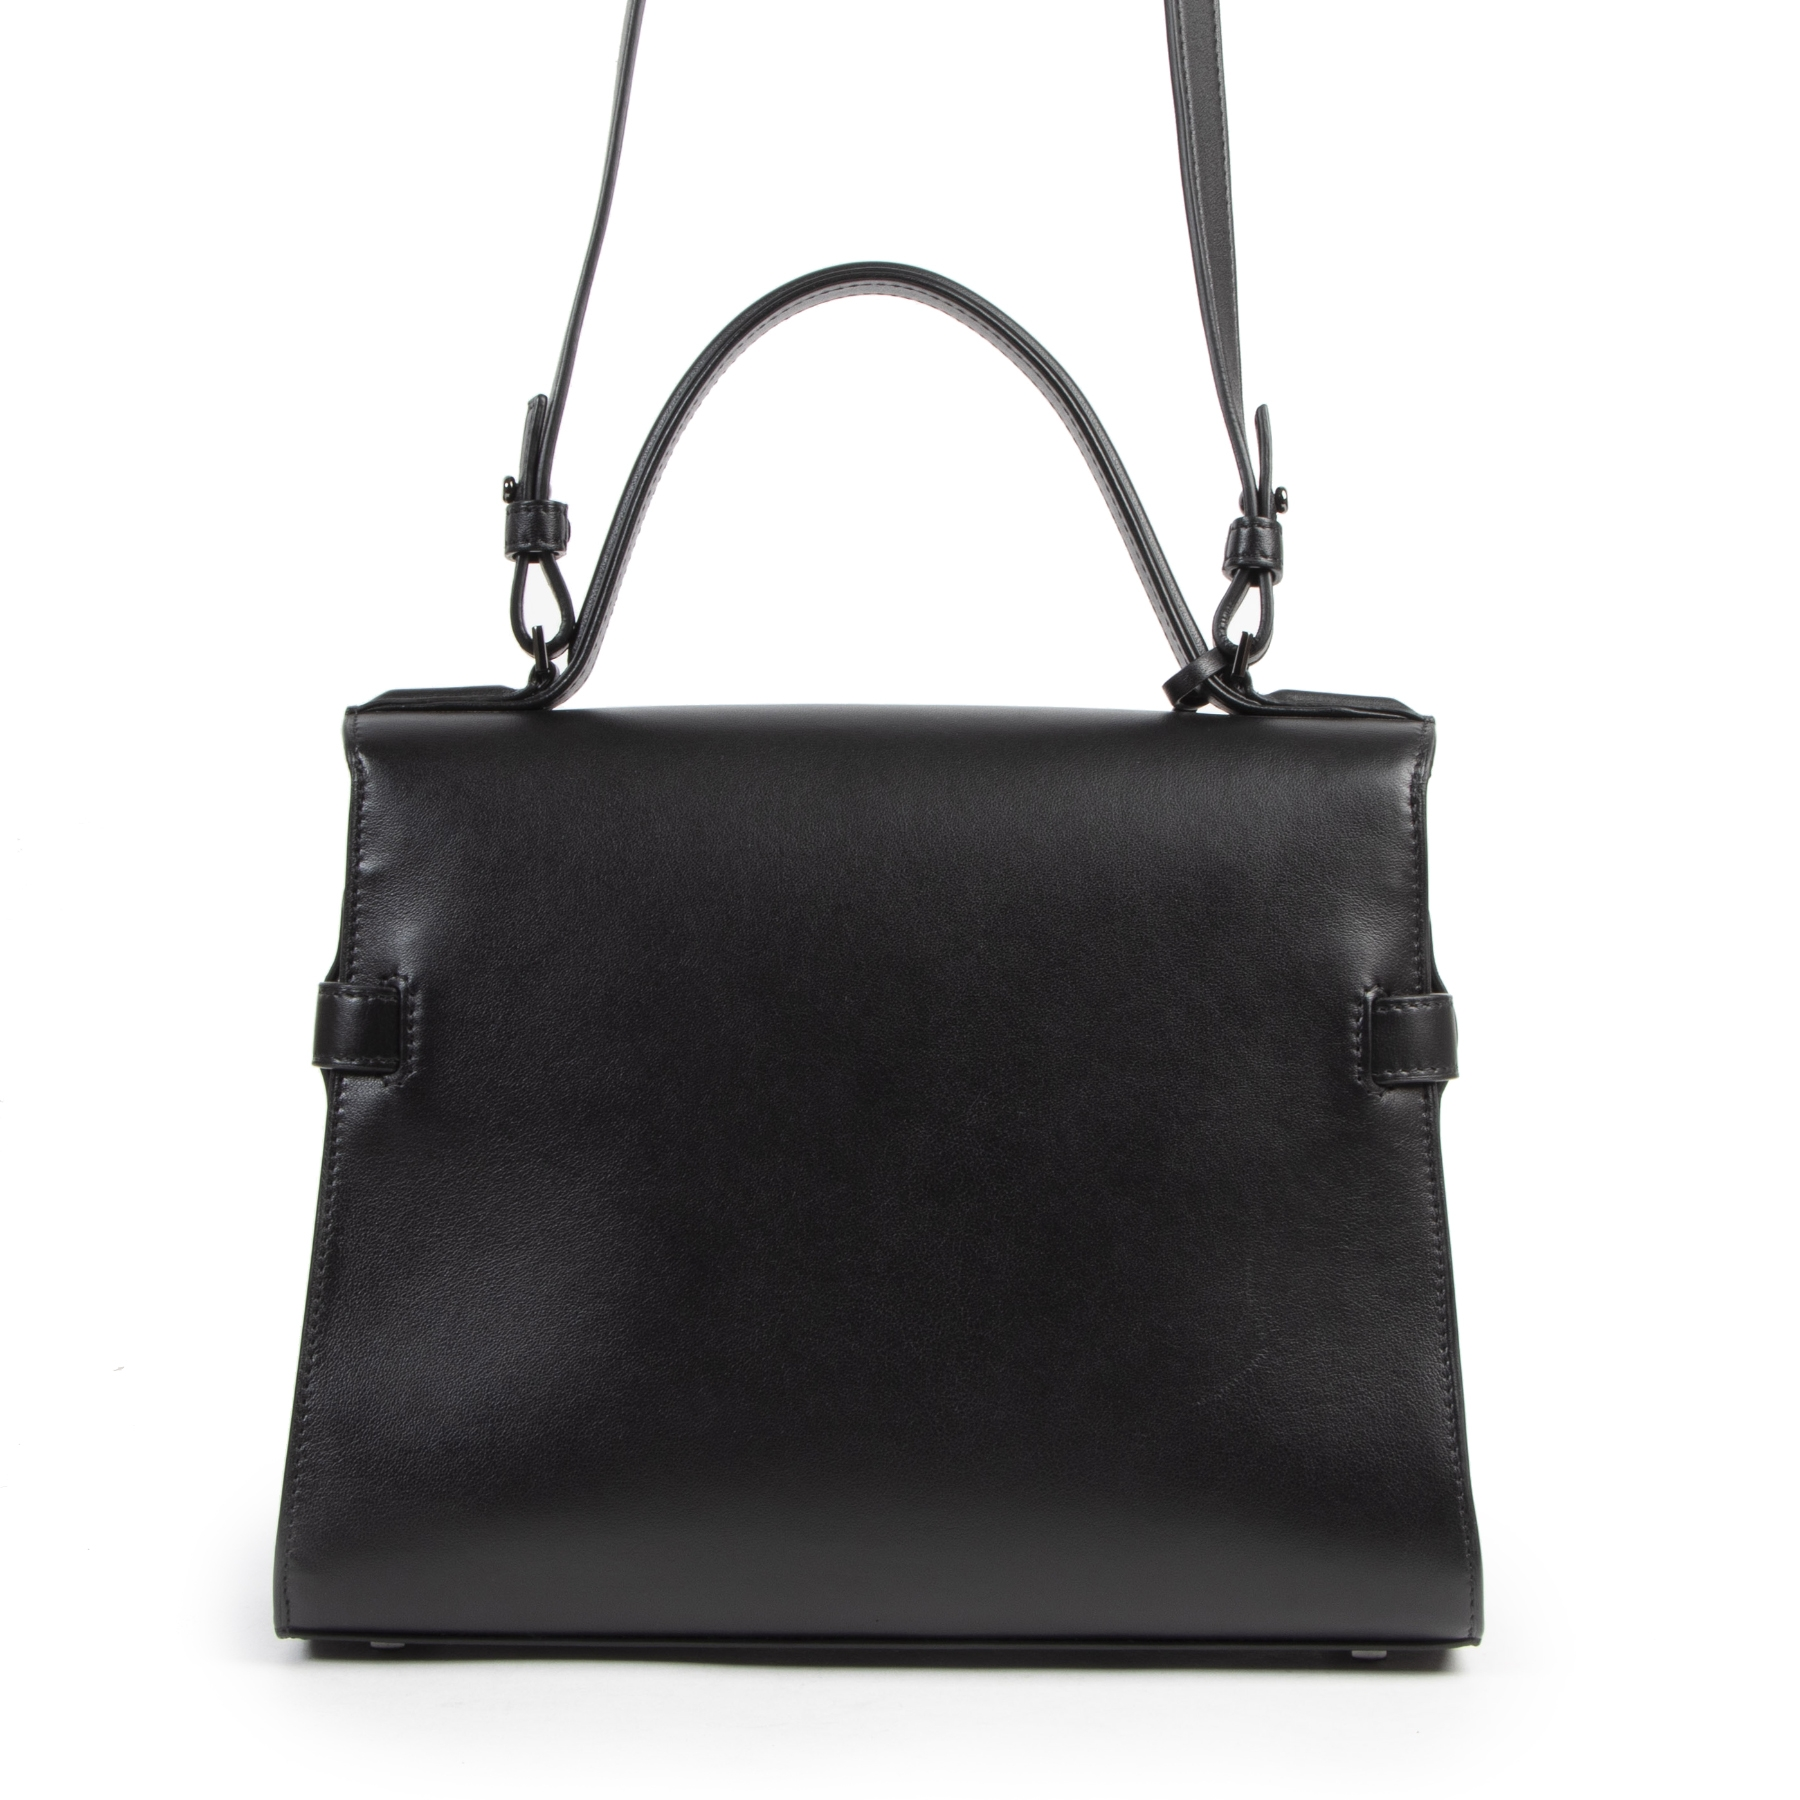 Are you looking for an authentic designer Delvaux All Black Tempête MM + Strap